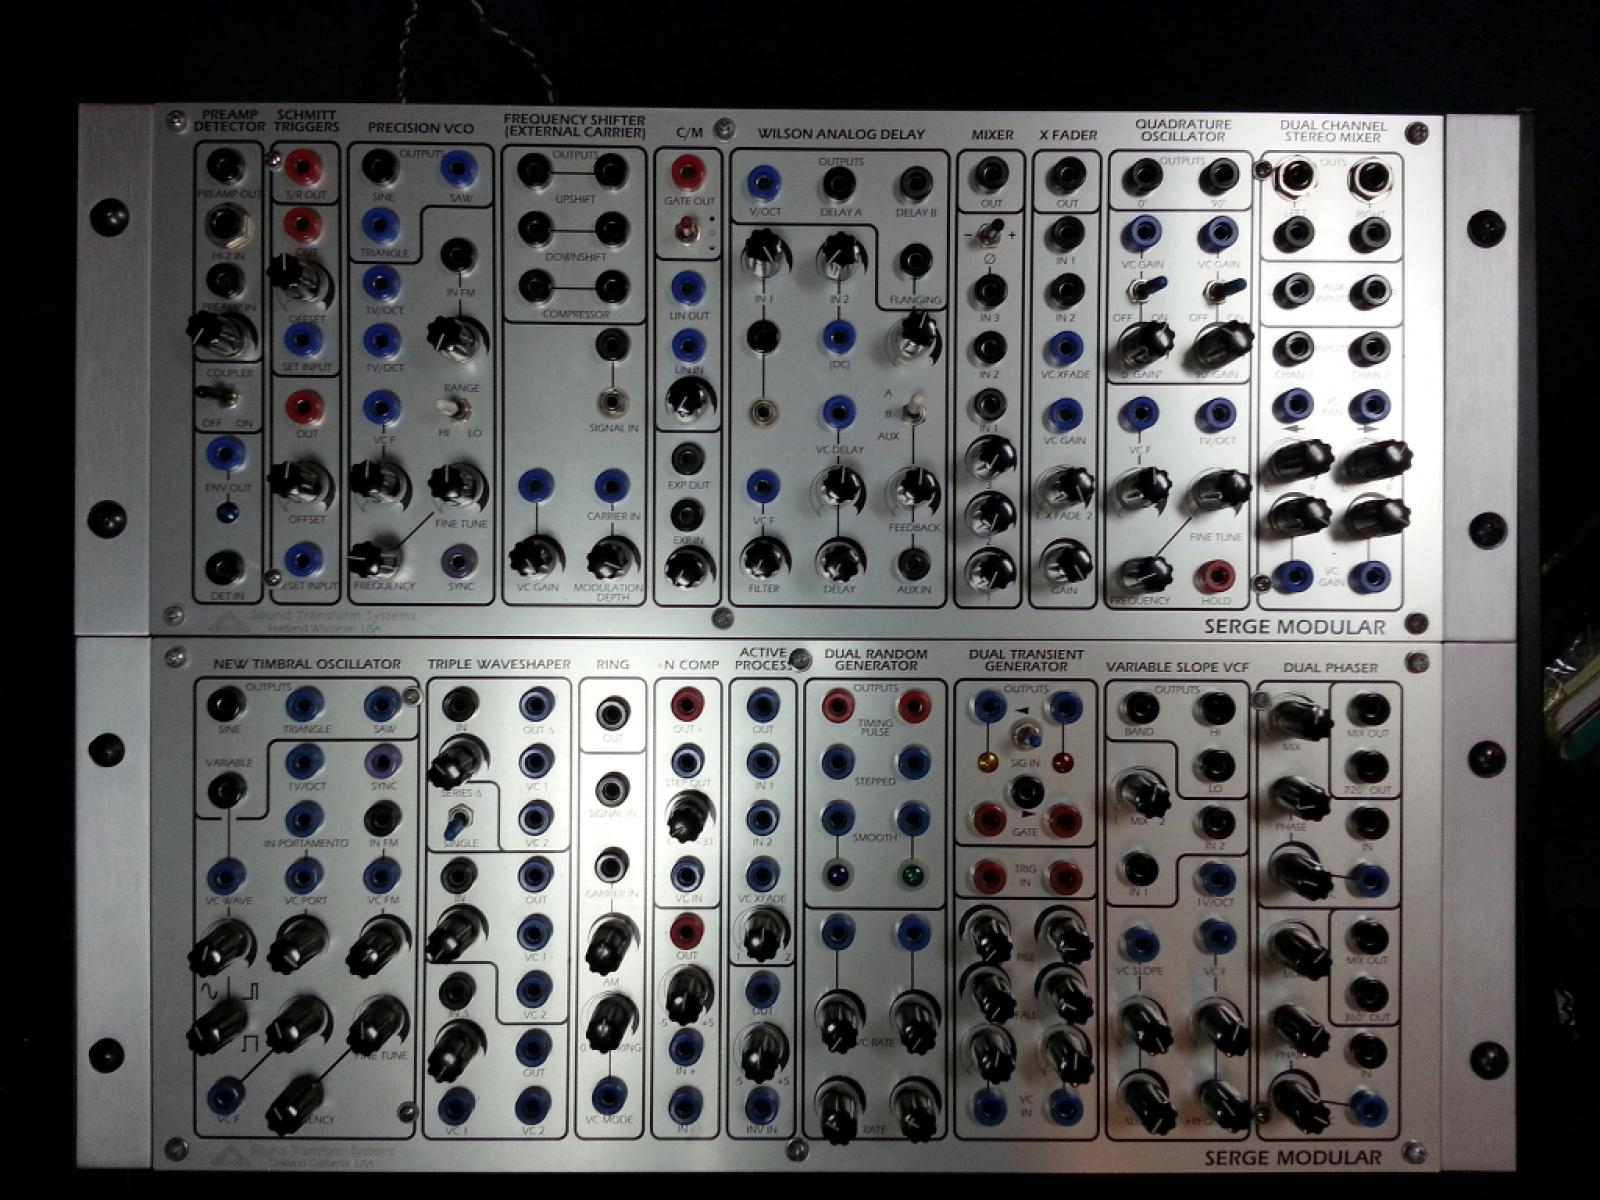 Matrixsynth Sts Serge Modular 5 Panels Plus Accessories For Sale Quadrature Oscillator External Carrier Input Control Module Wilson Analog Delay Audio Mixer With Phase Reverse Switch Dual Channel Stereo